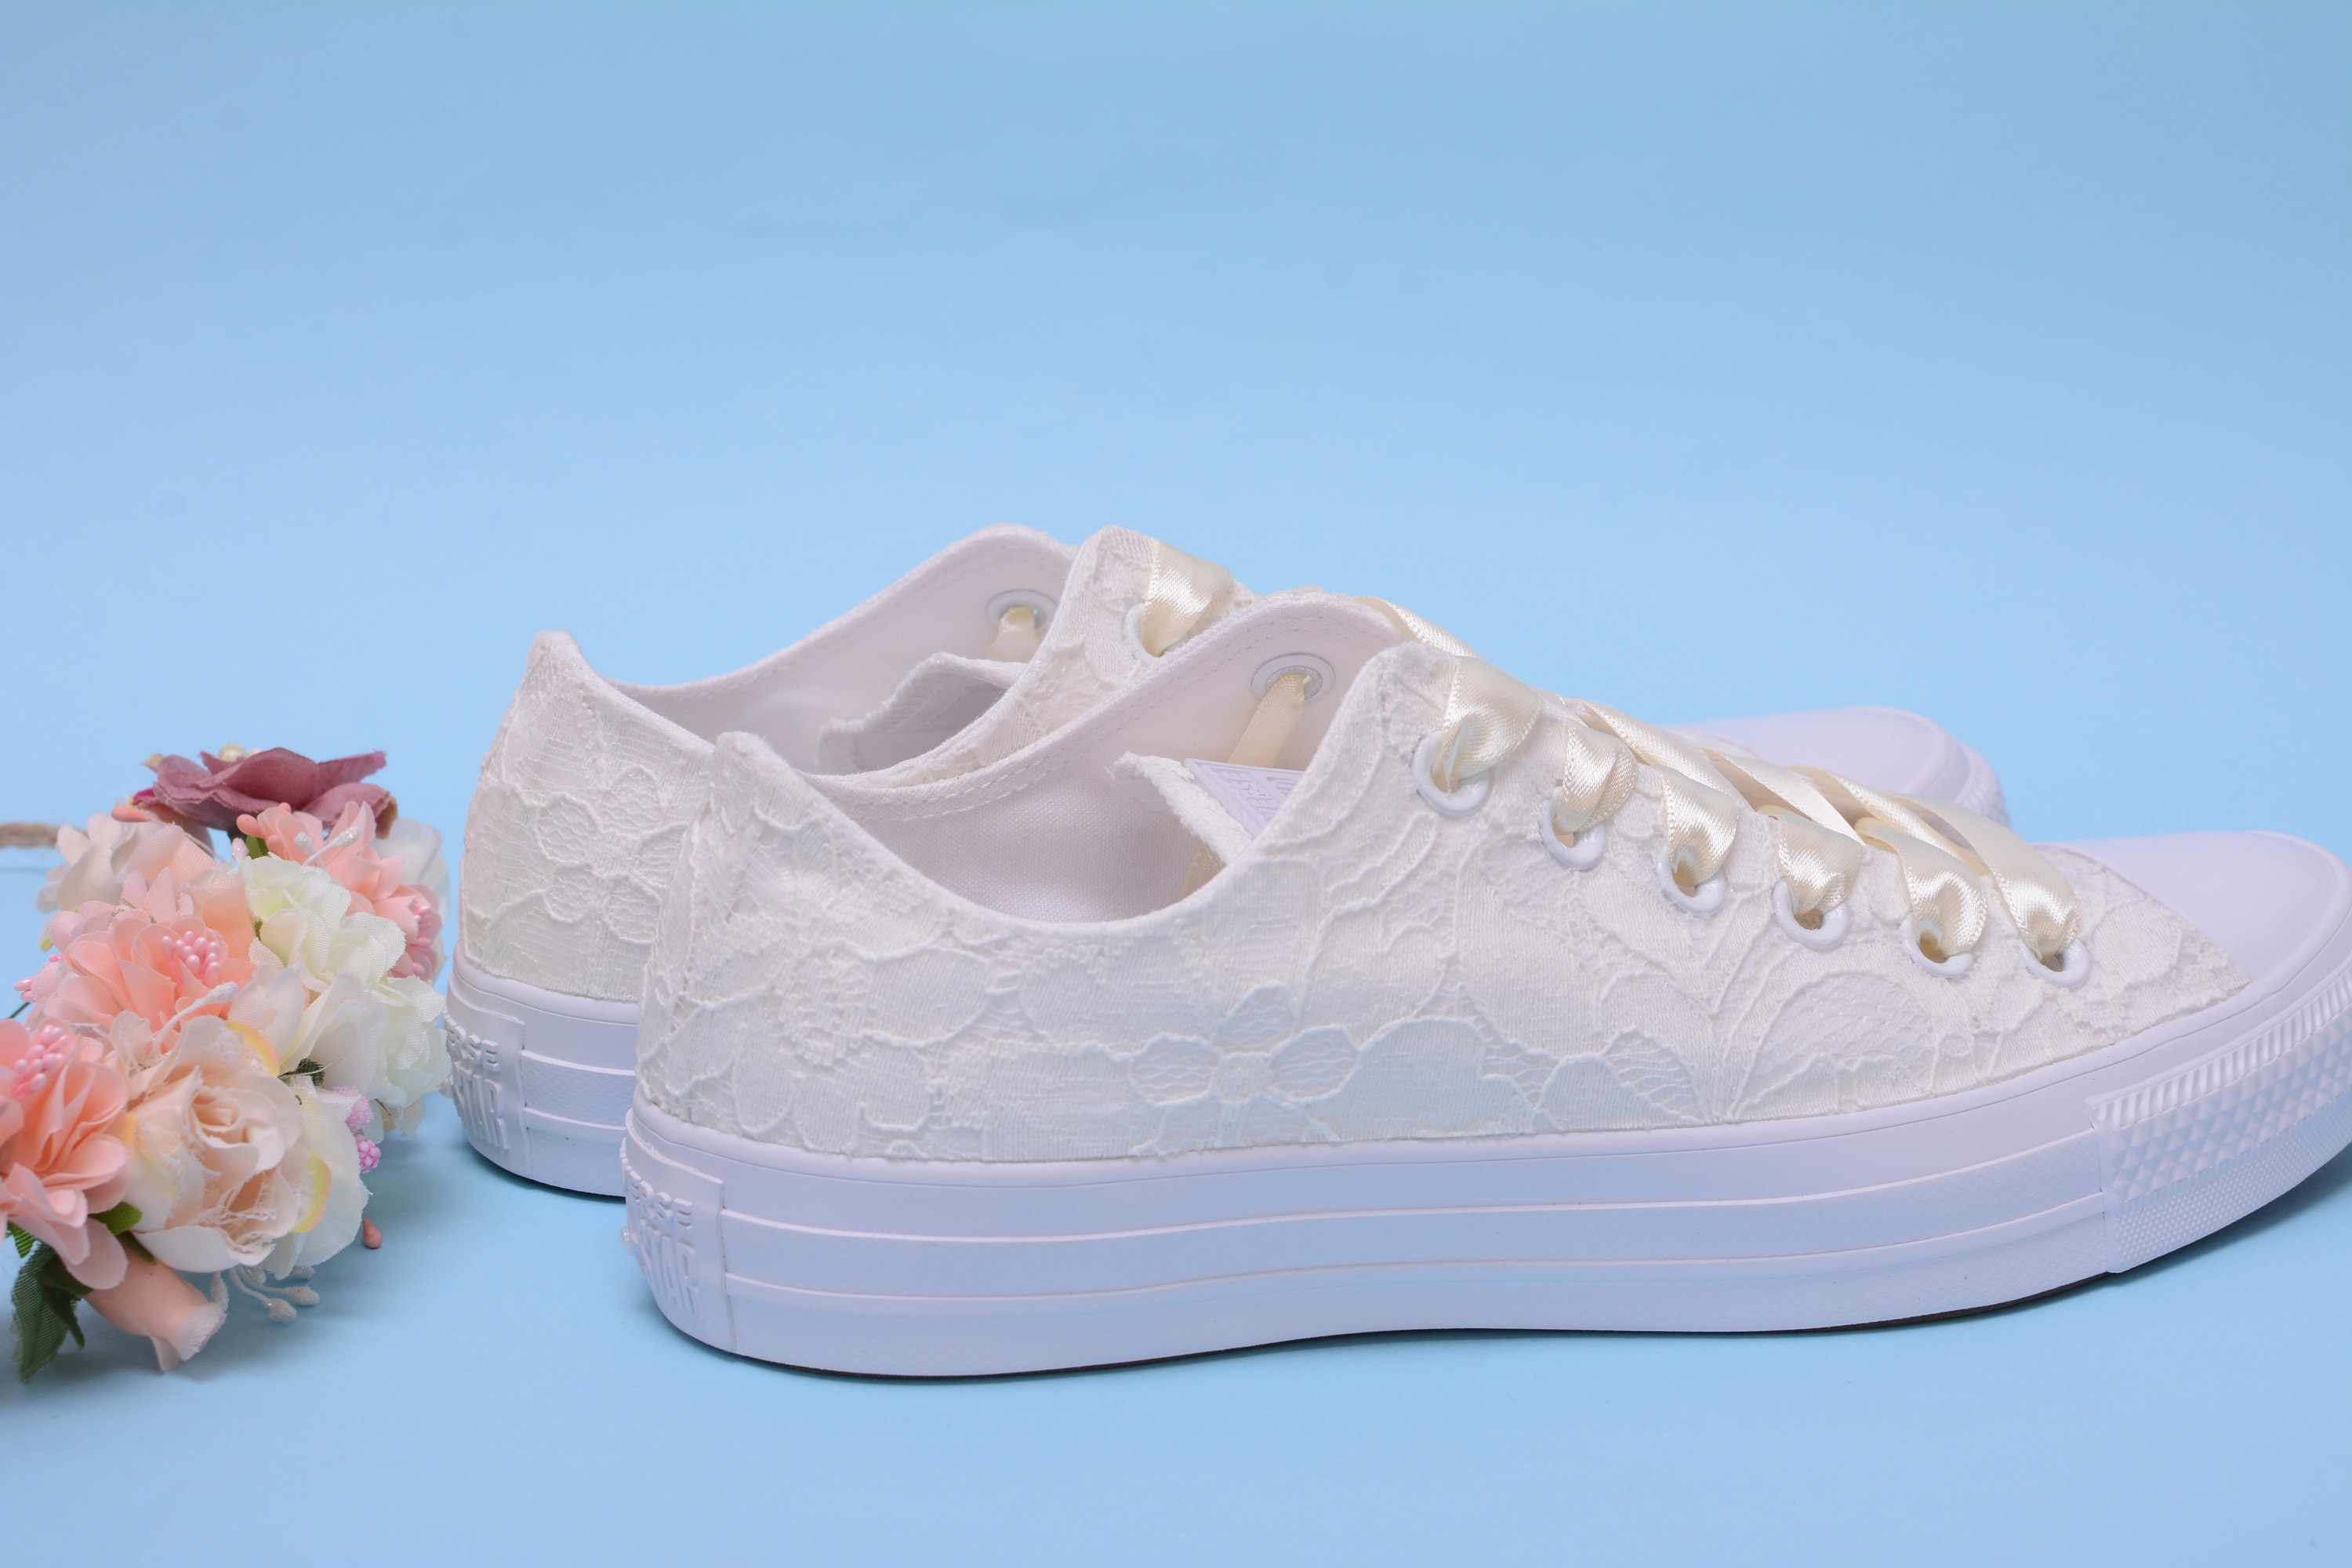 f6060349f135 Ivory Lace Wedding Converse For Bride Bridal Converse